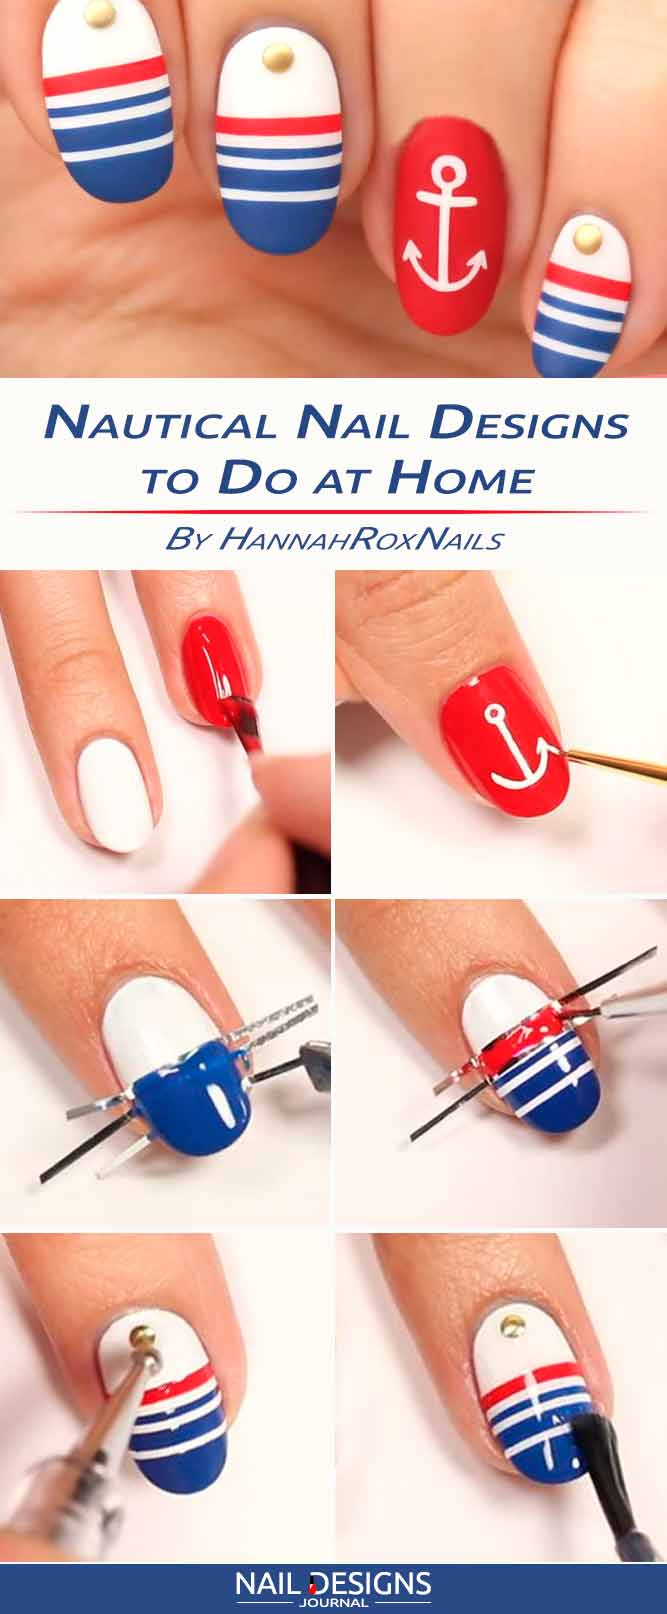 nautical nail designs to do at home - Nail Designs Home